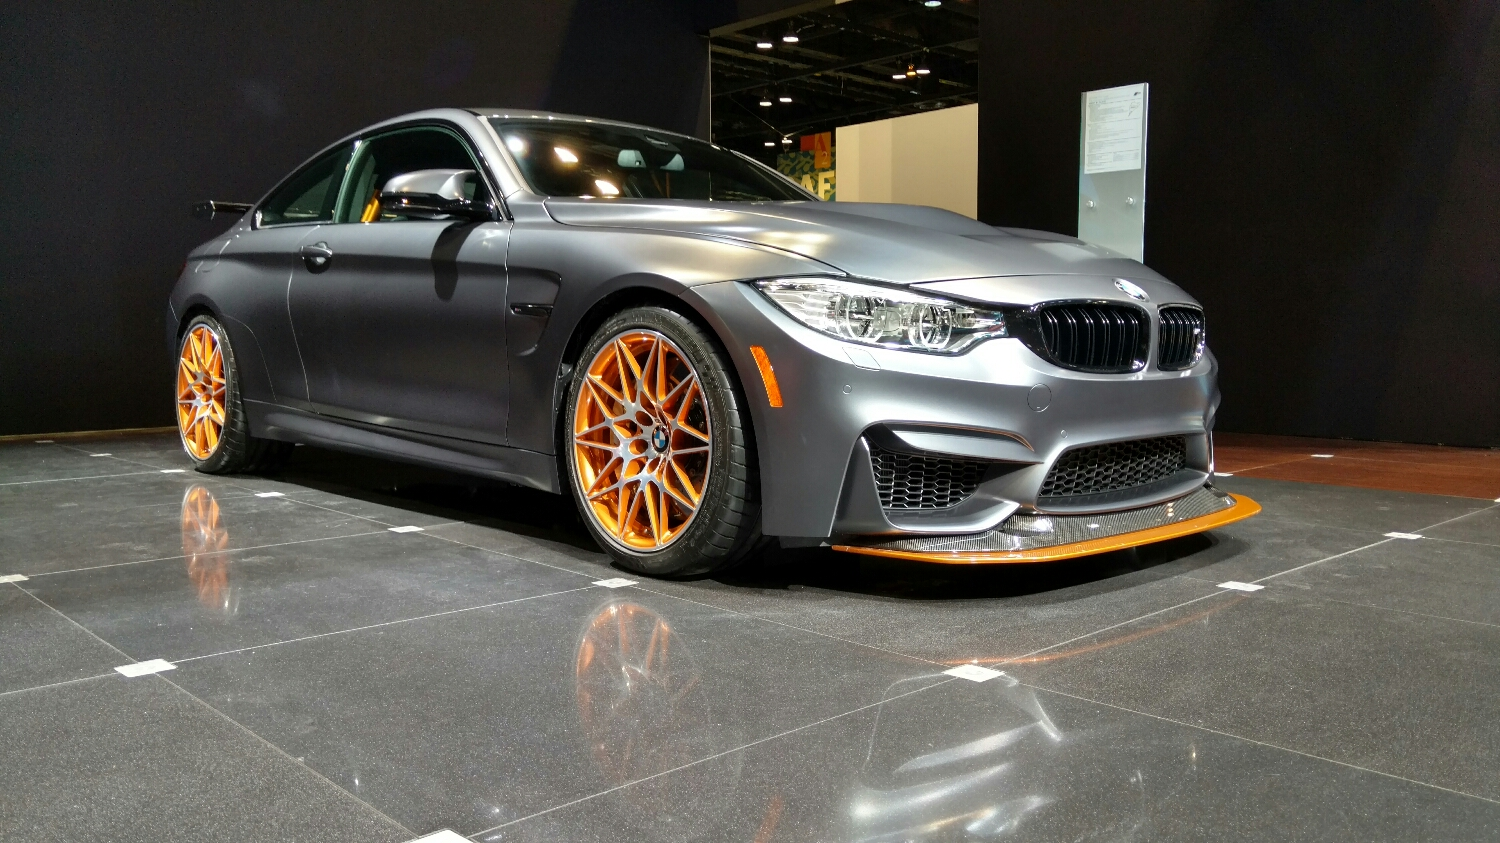 120k buys you a badass BMW track car . It also would buy you a big portion of the home I live in...but I'm glad this exists.